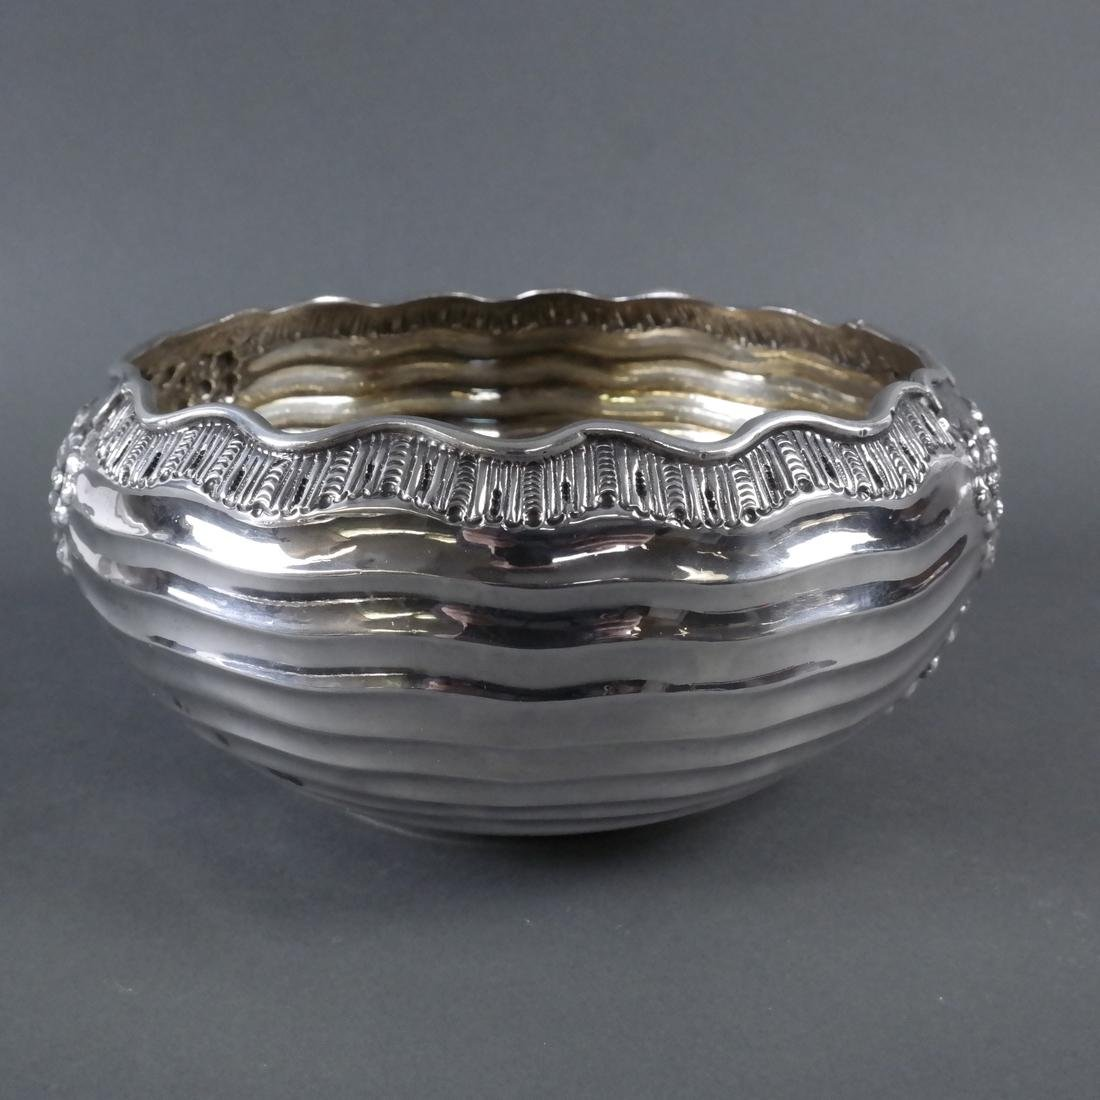 .900 Standard Silver Chased Foliate Bowl - 3